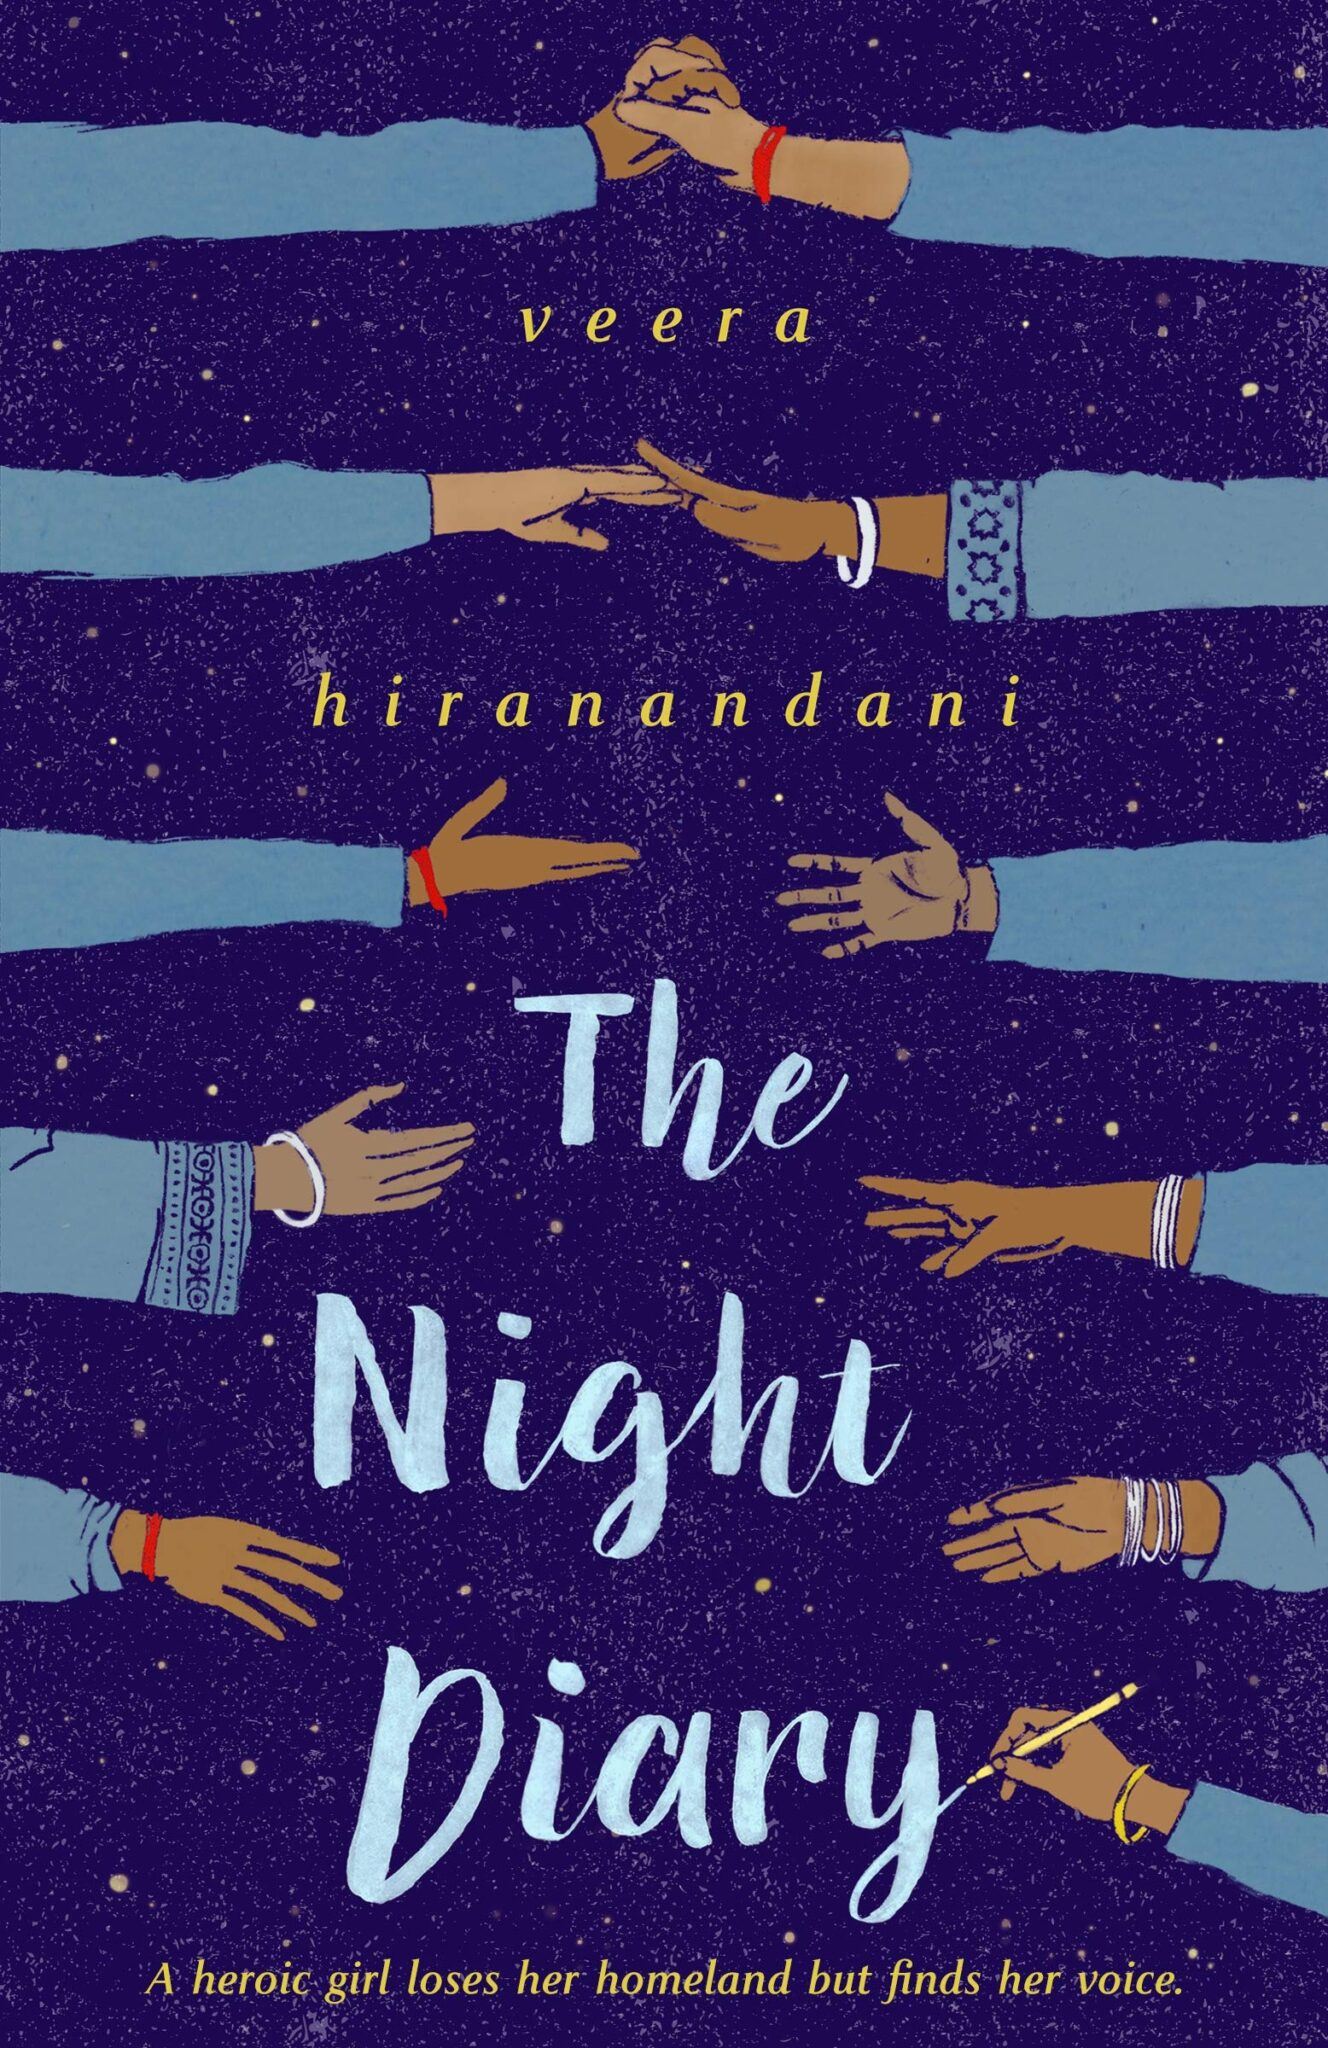 the night diary veera Hiranandani PB cover